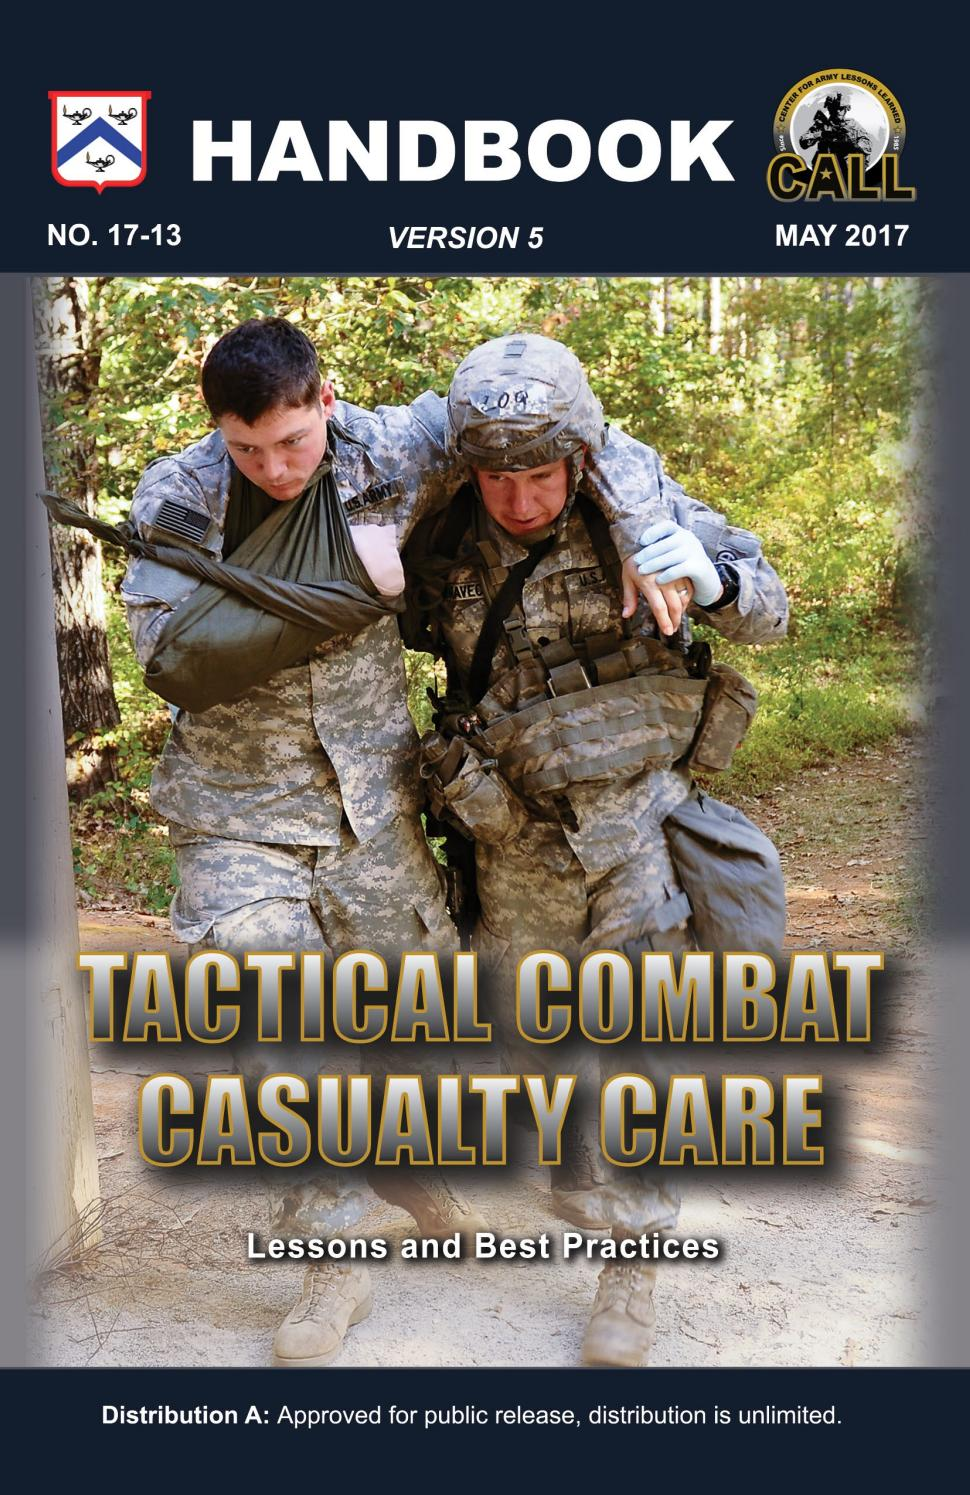 Tactical combat casualty care handbook version 5 by ...